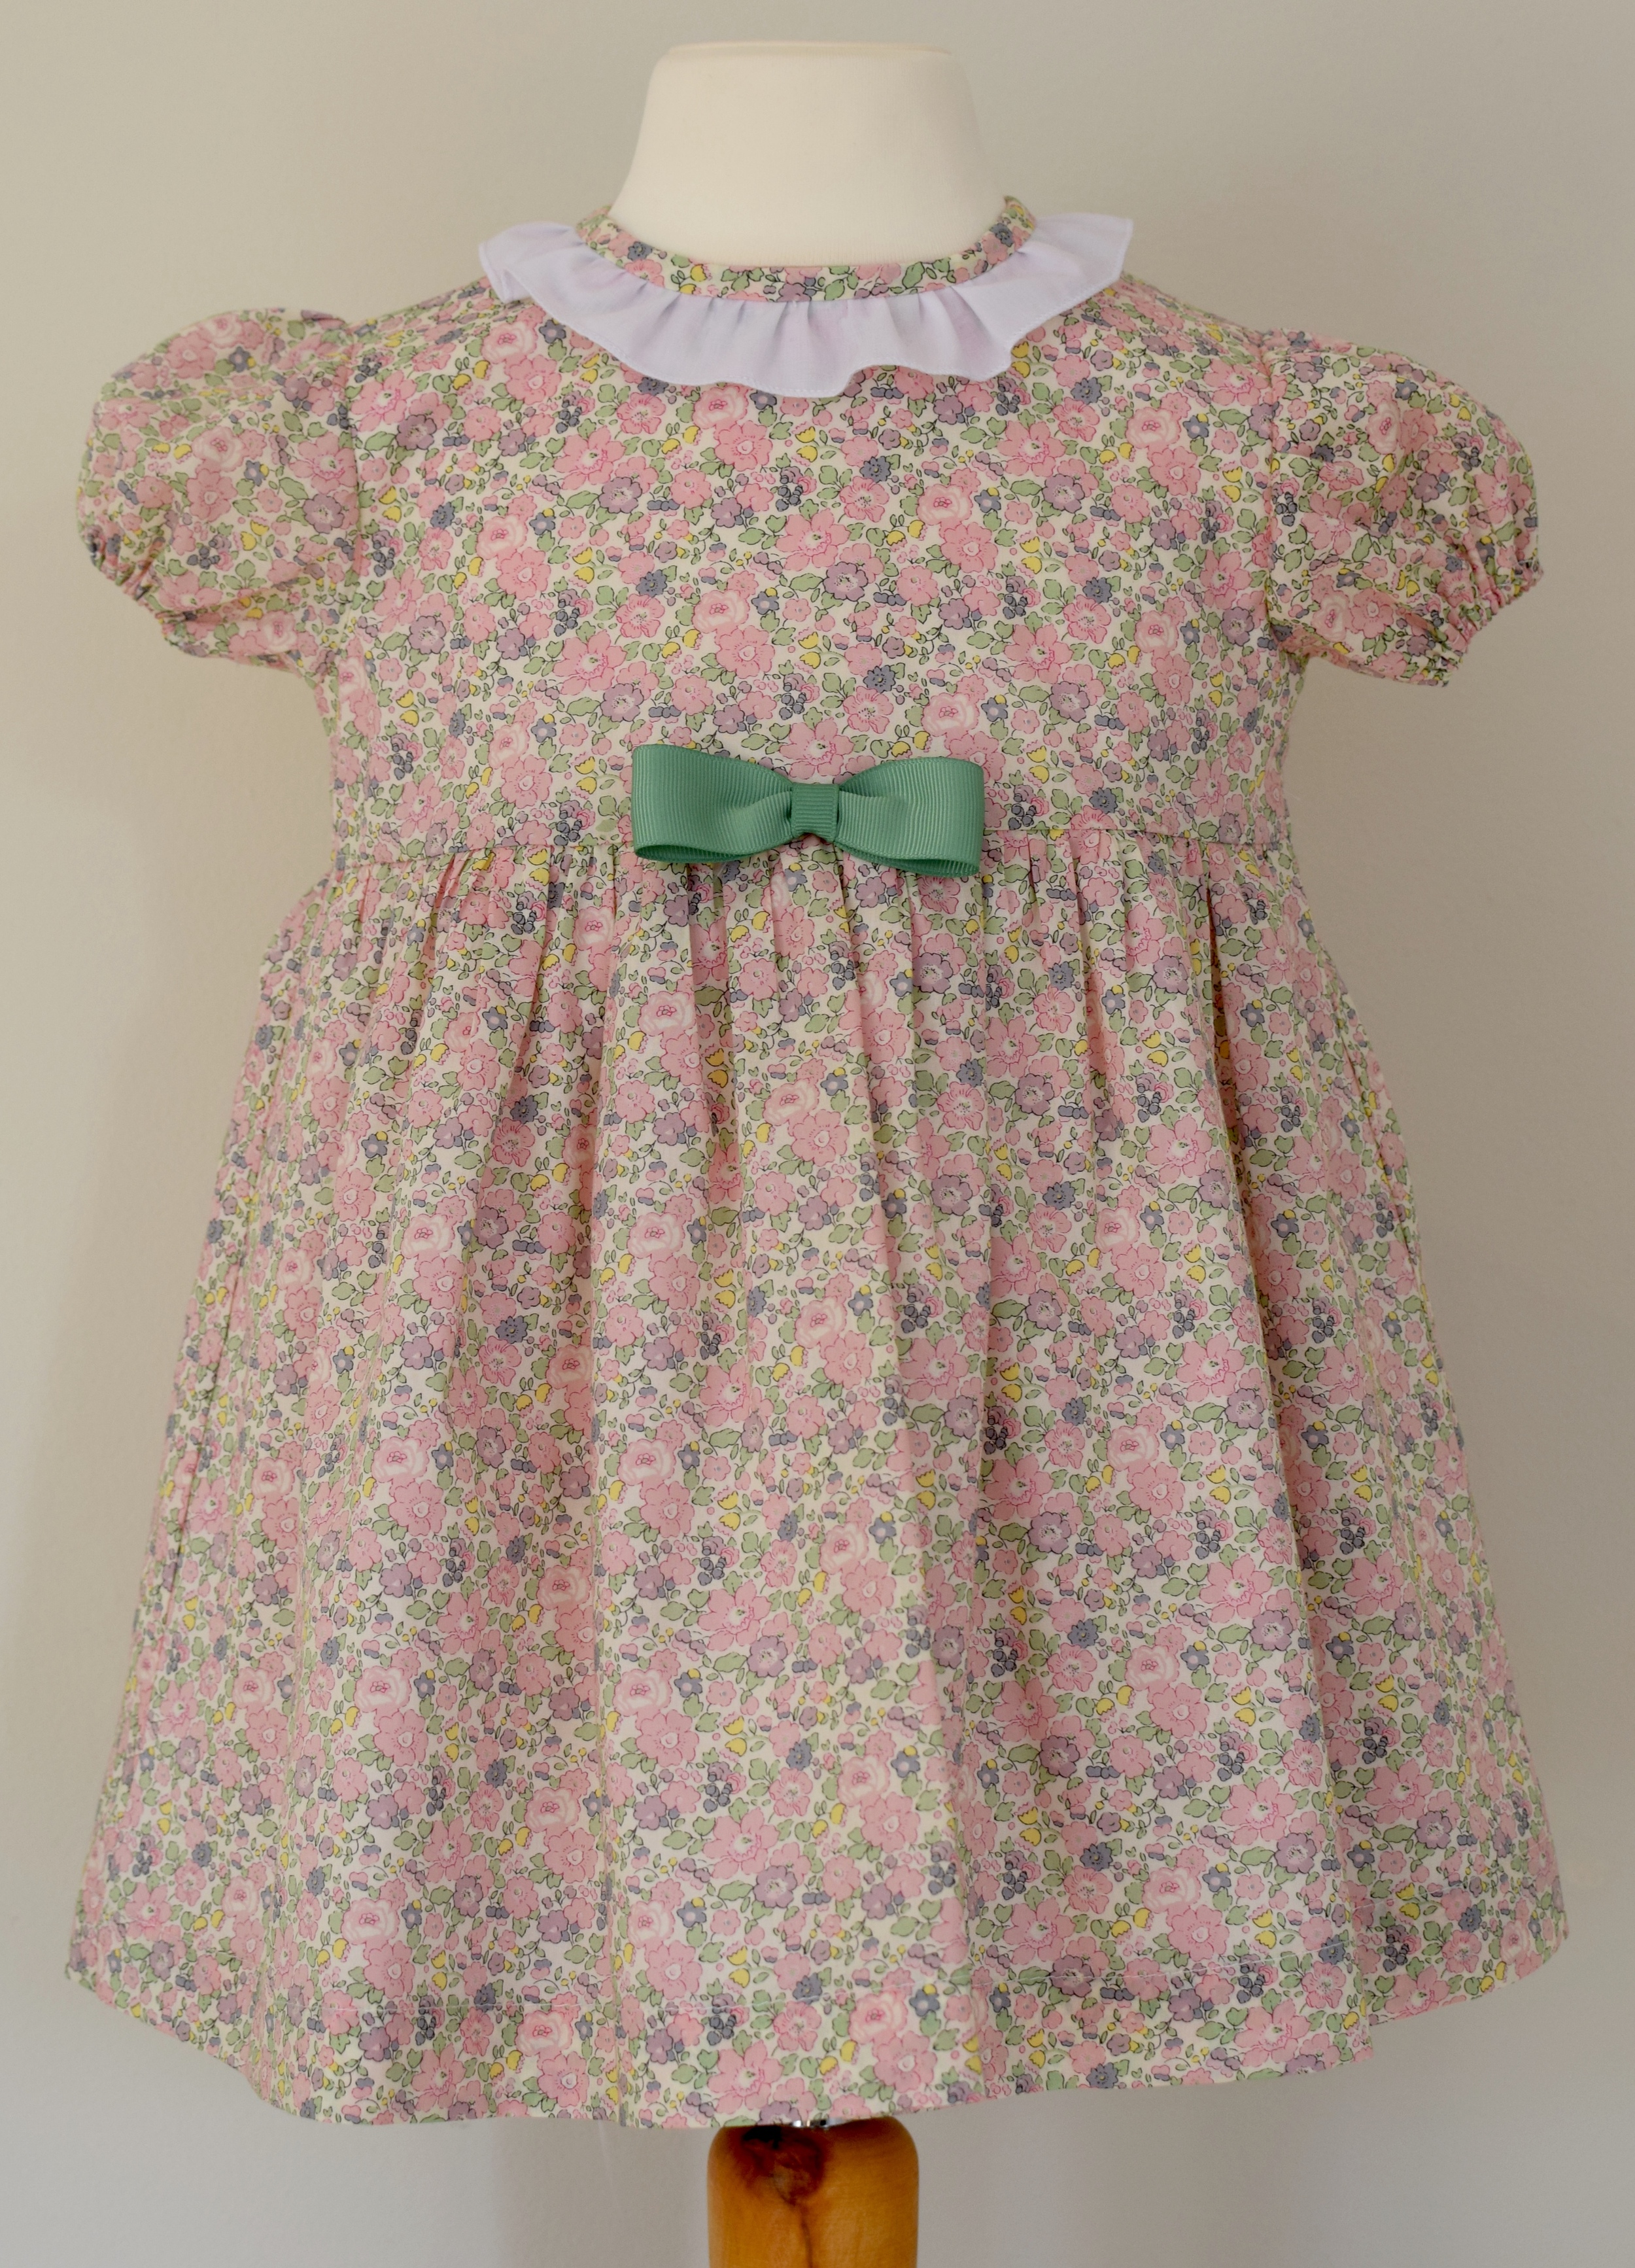 Liberty Betsy Anne pink short sleeve dress   Another gorgeous new dress for Spring Summer 16 toddlers in a dainty pale pink and green Liberty print:features include a contrasting ruffle around the neck,short sleeves and a fixed contrasting grosgrain ribbon. This dress is fully lined with a three button fastening at the back.  Available up to 3 years.  £40